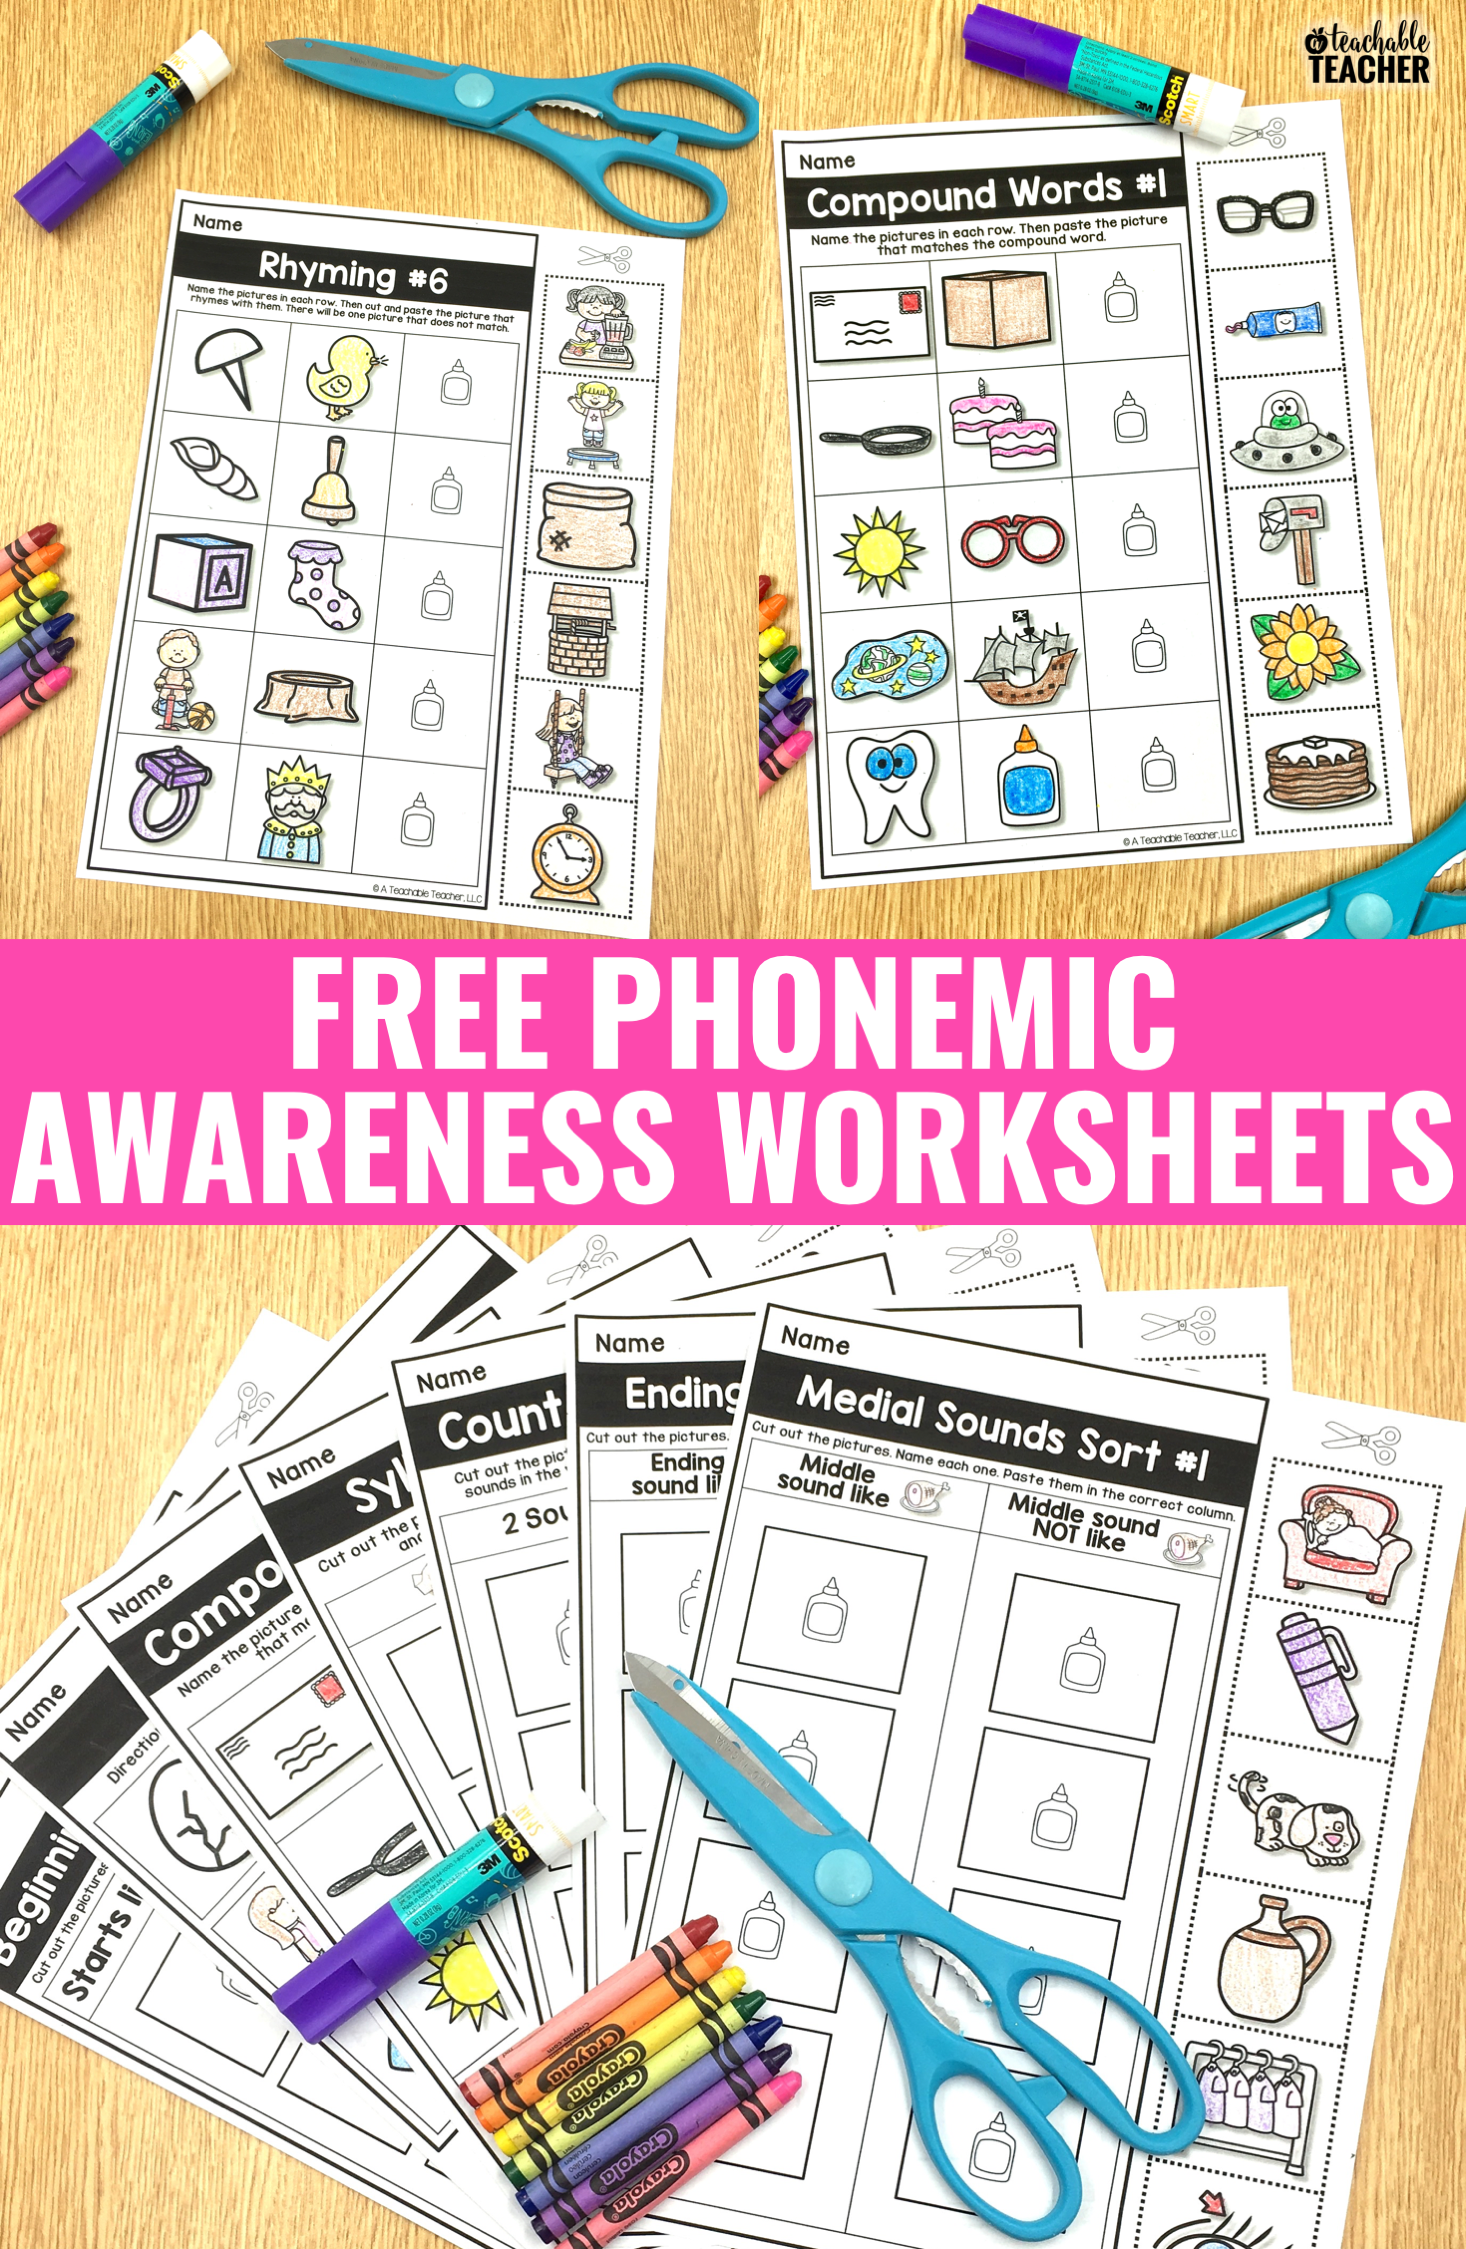 Worksheets Free Phonemic Awareness Worksheets free phonemic awareness worksheets these activities are perfect for kindergarten and first grade